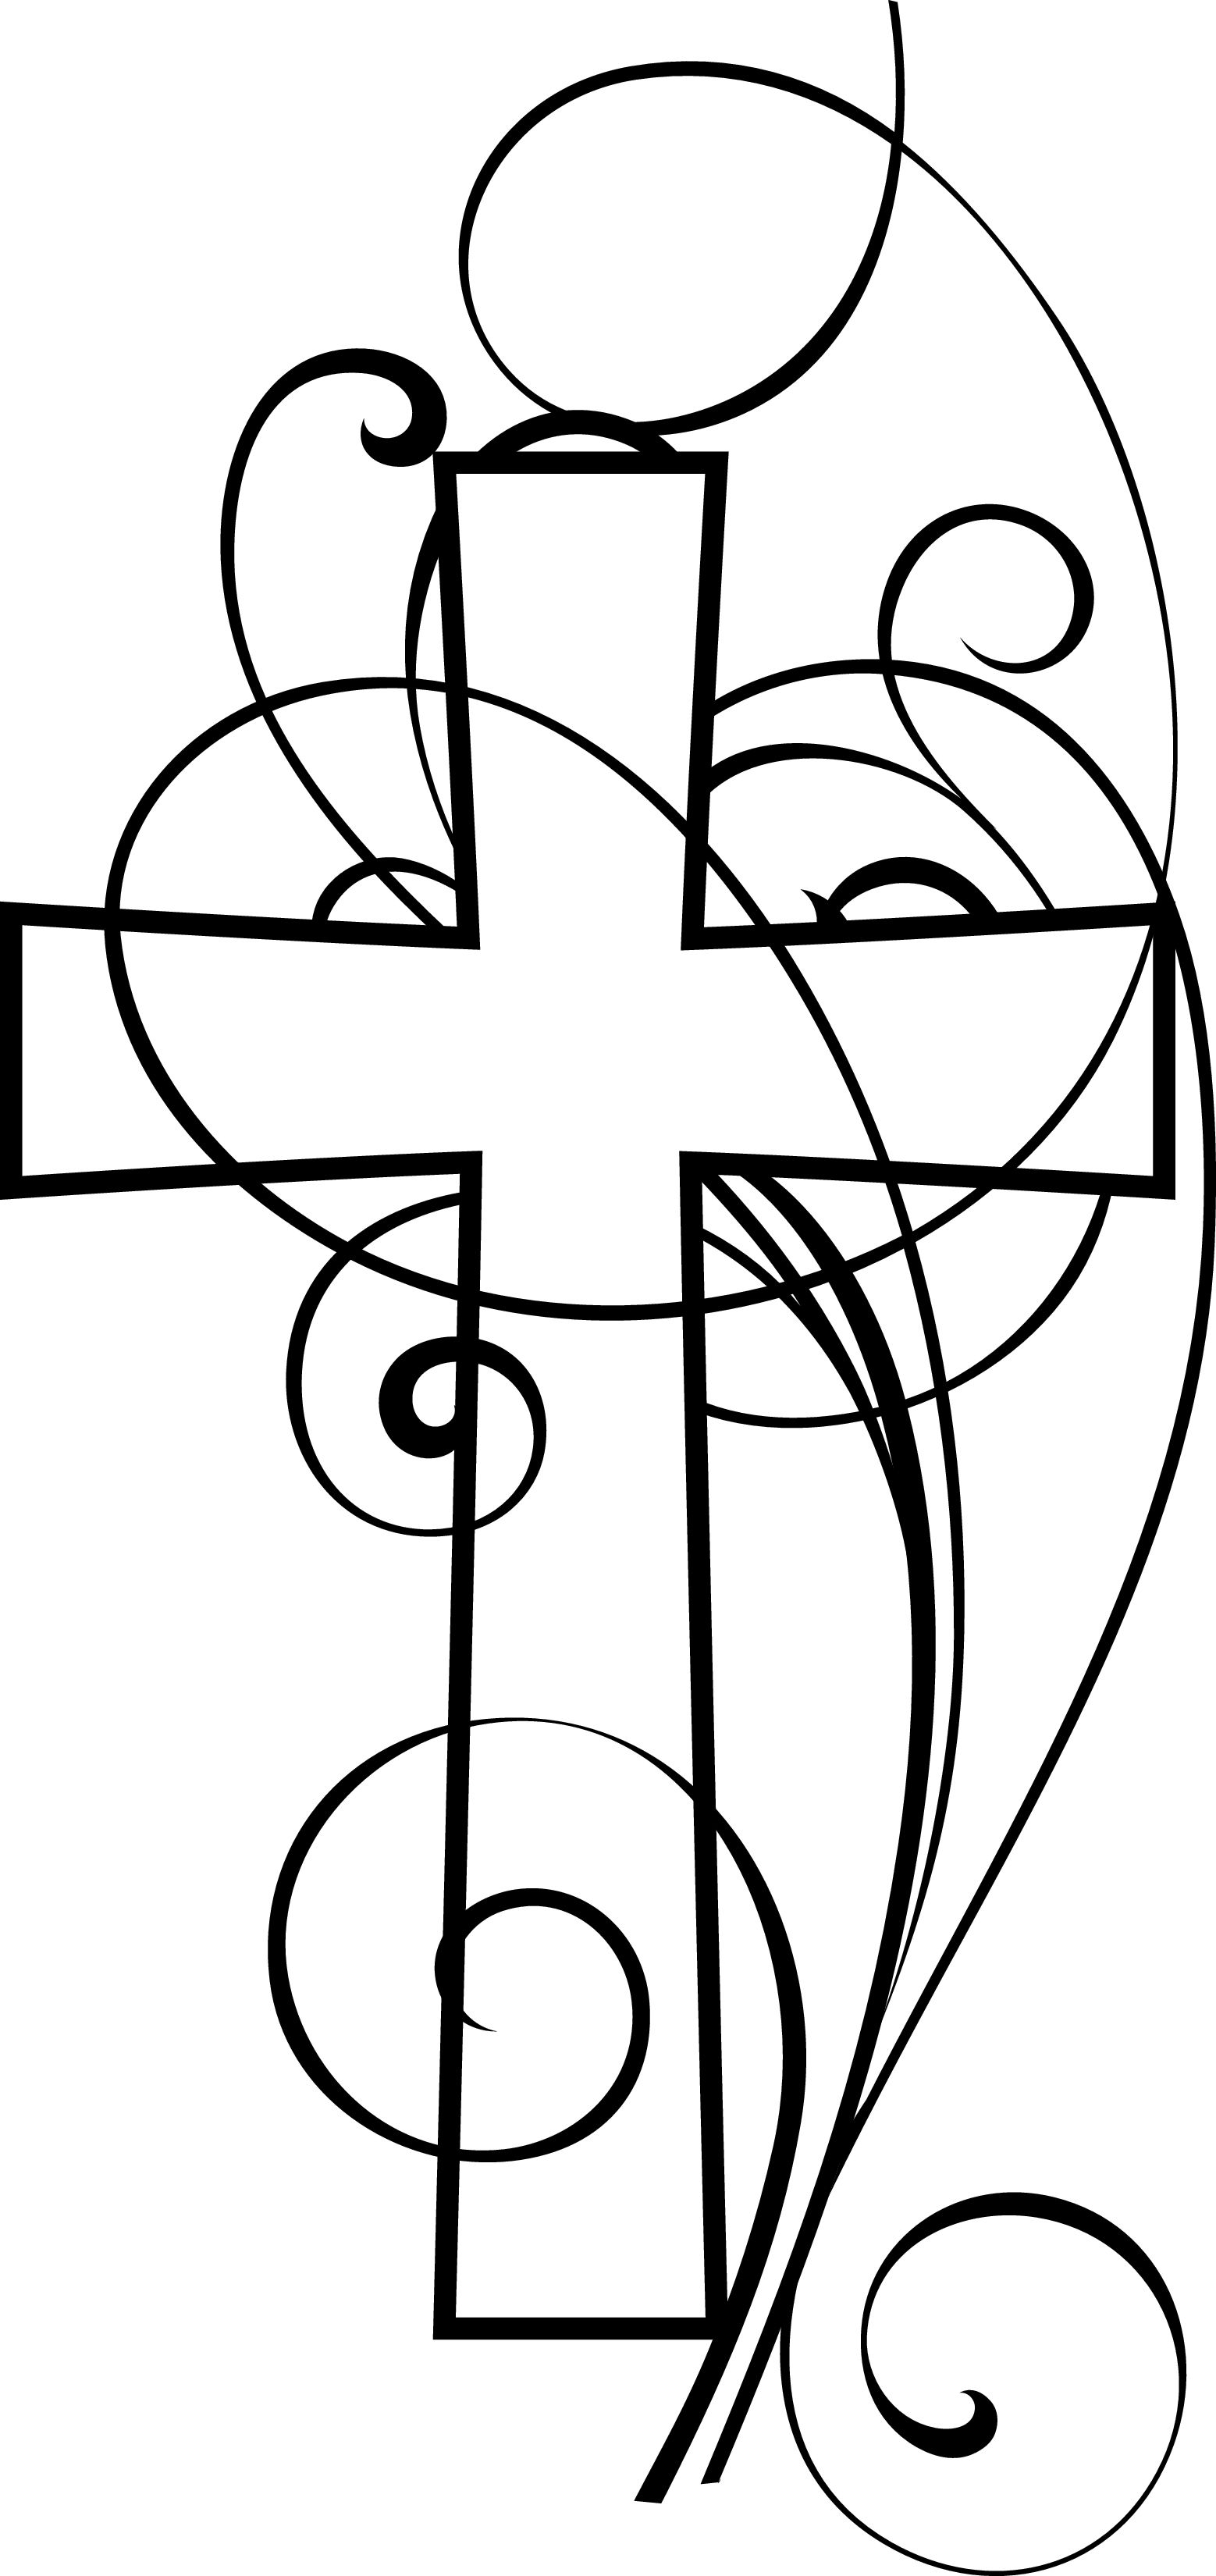 small resolution of cross clipart google search